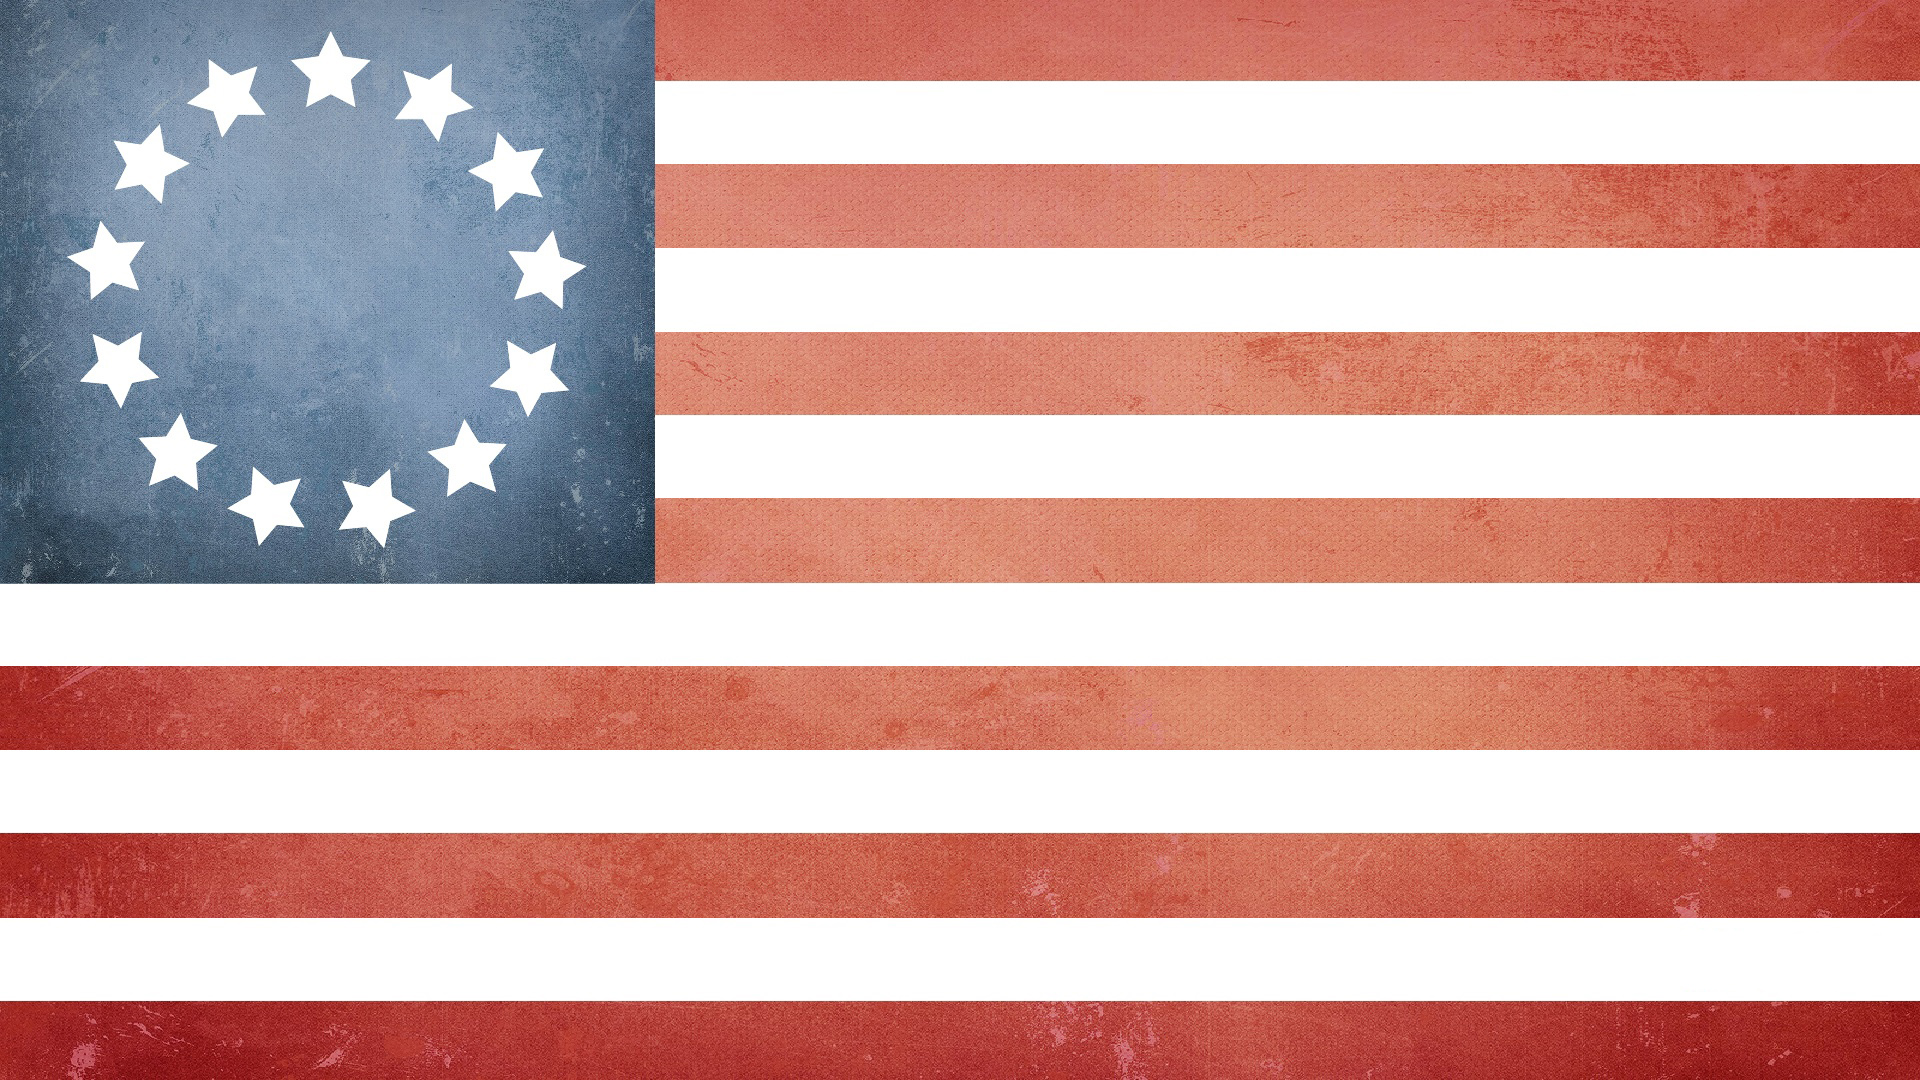 13 Star US Flag